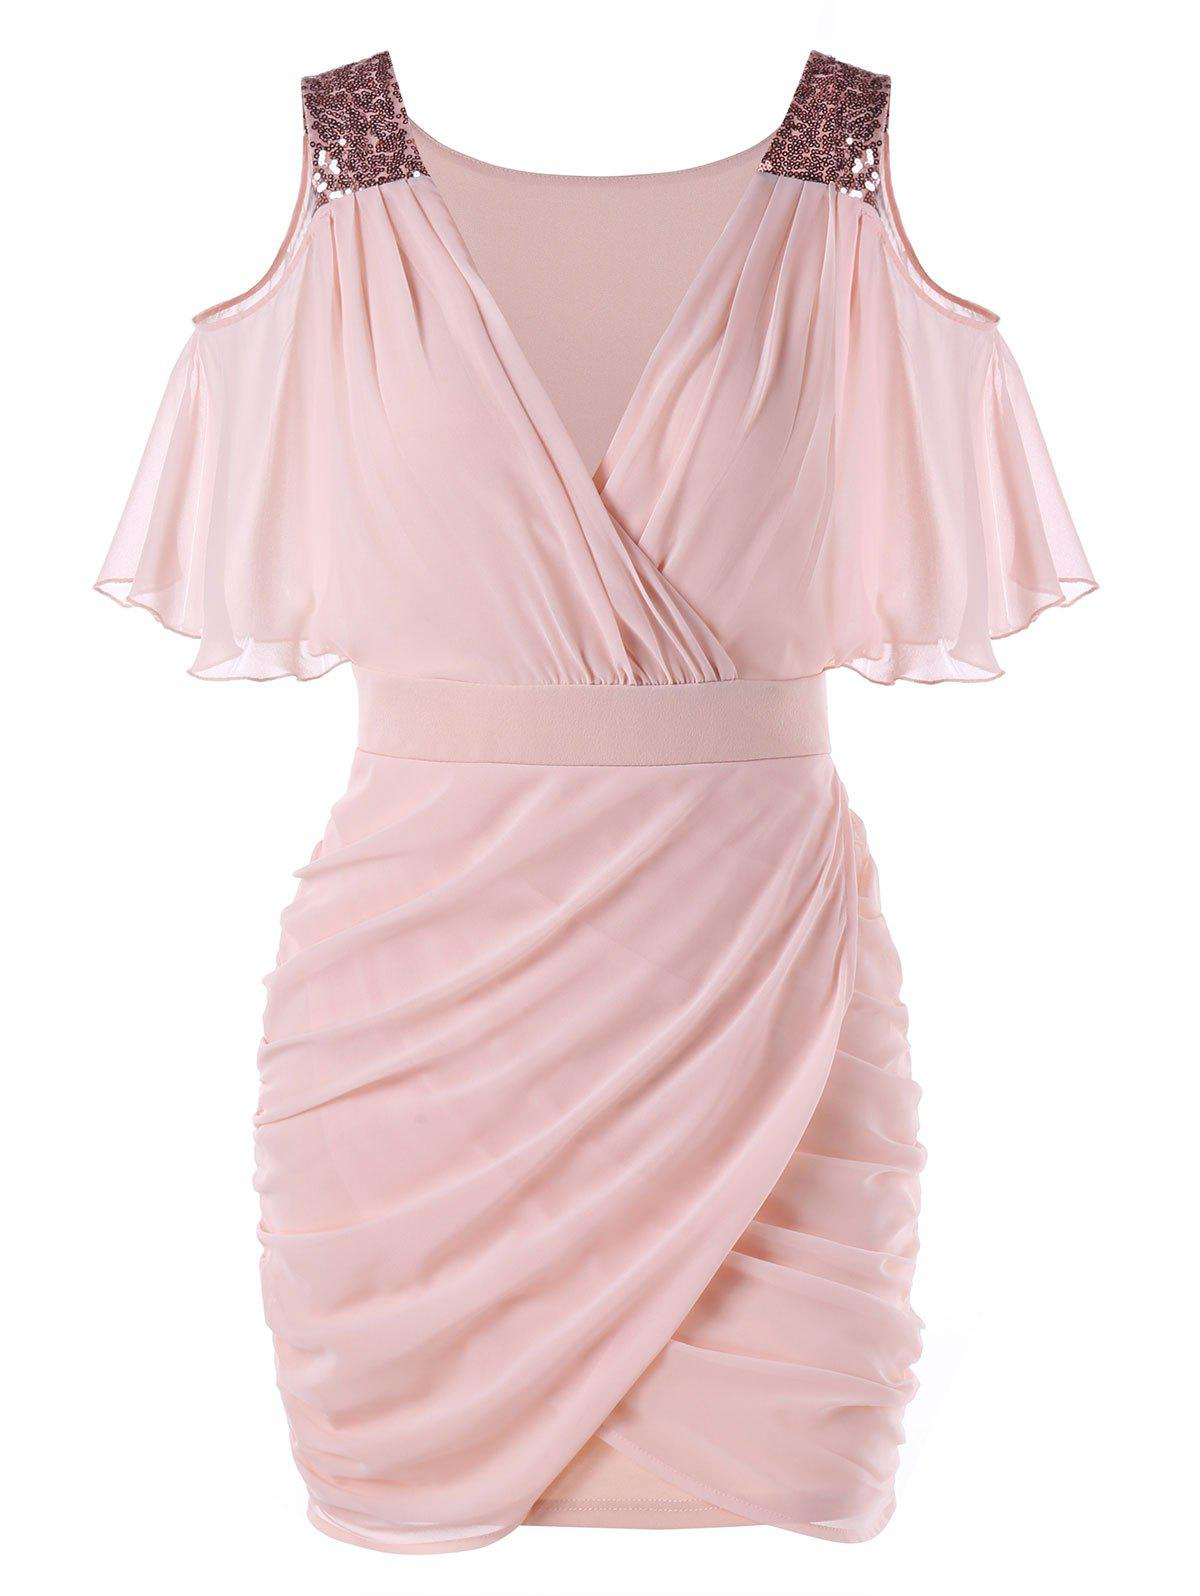 Open Shoulder Sequined Chiffon Dress - LIGHT PINK M